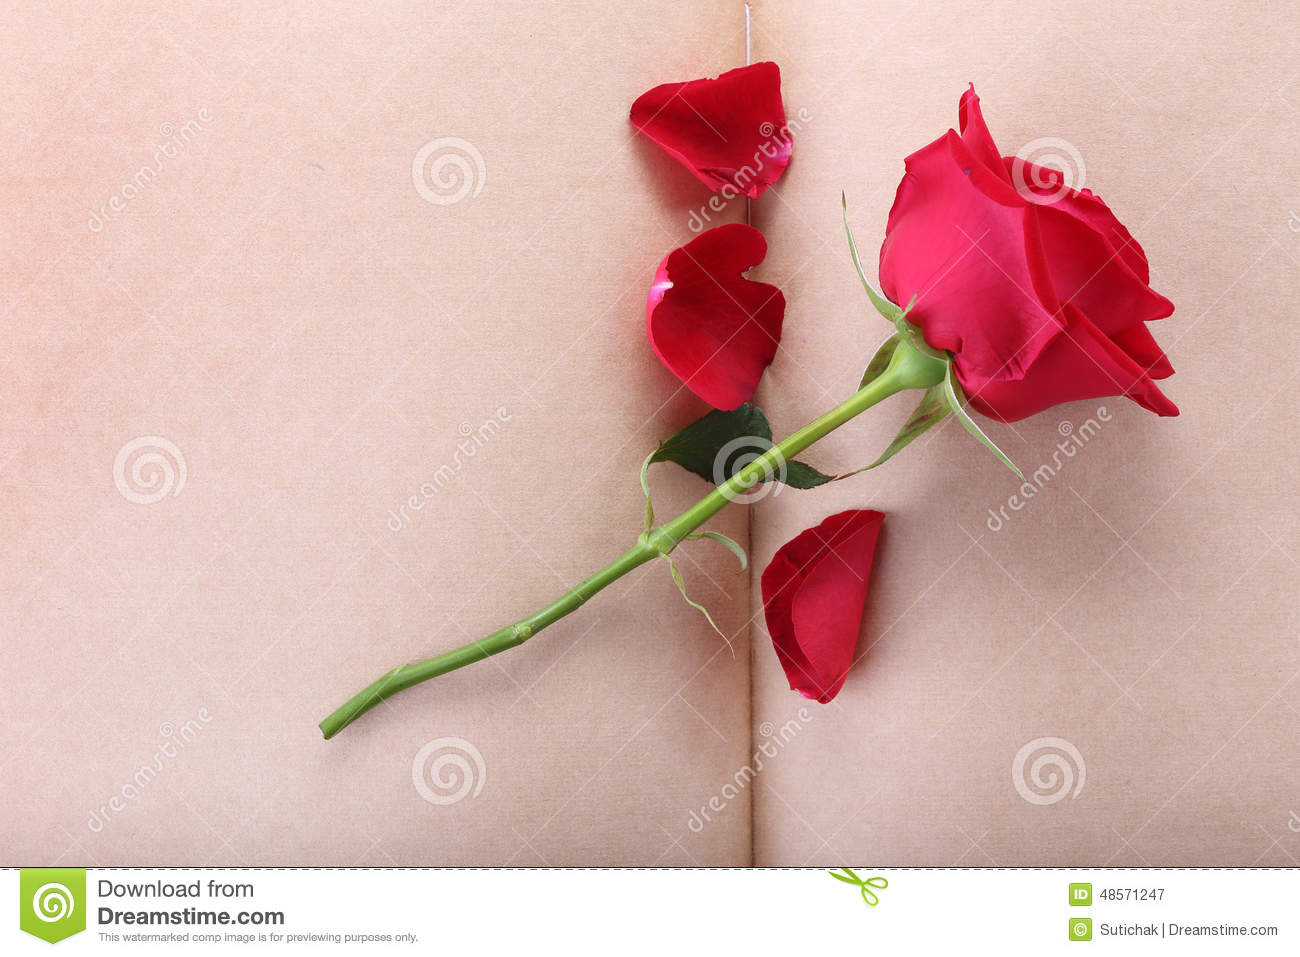 Red Rose Flower On Blank Paper Stock Image - Image of gift, card ...